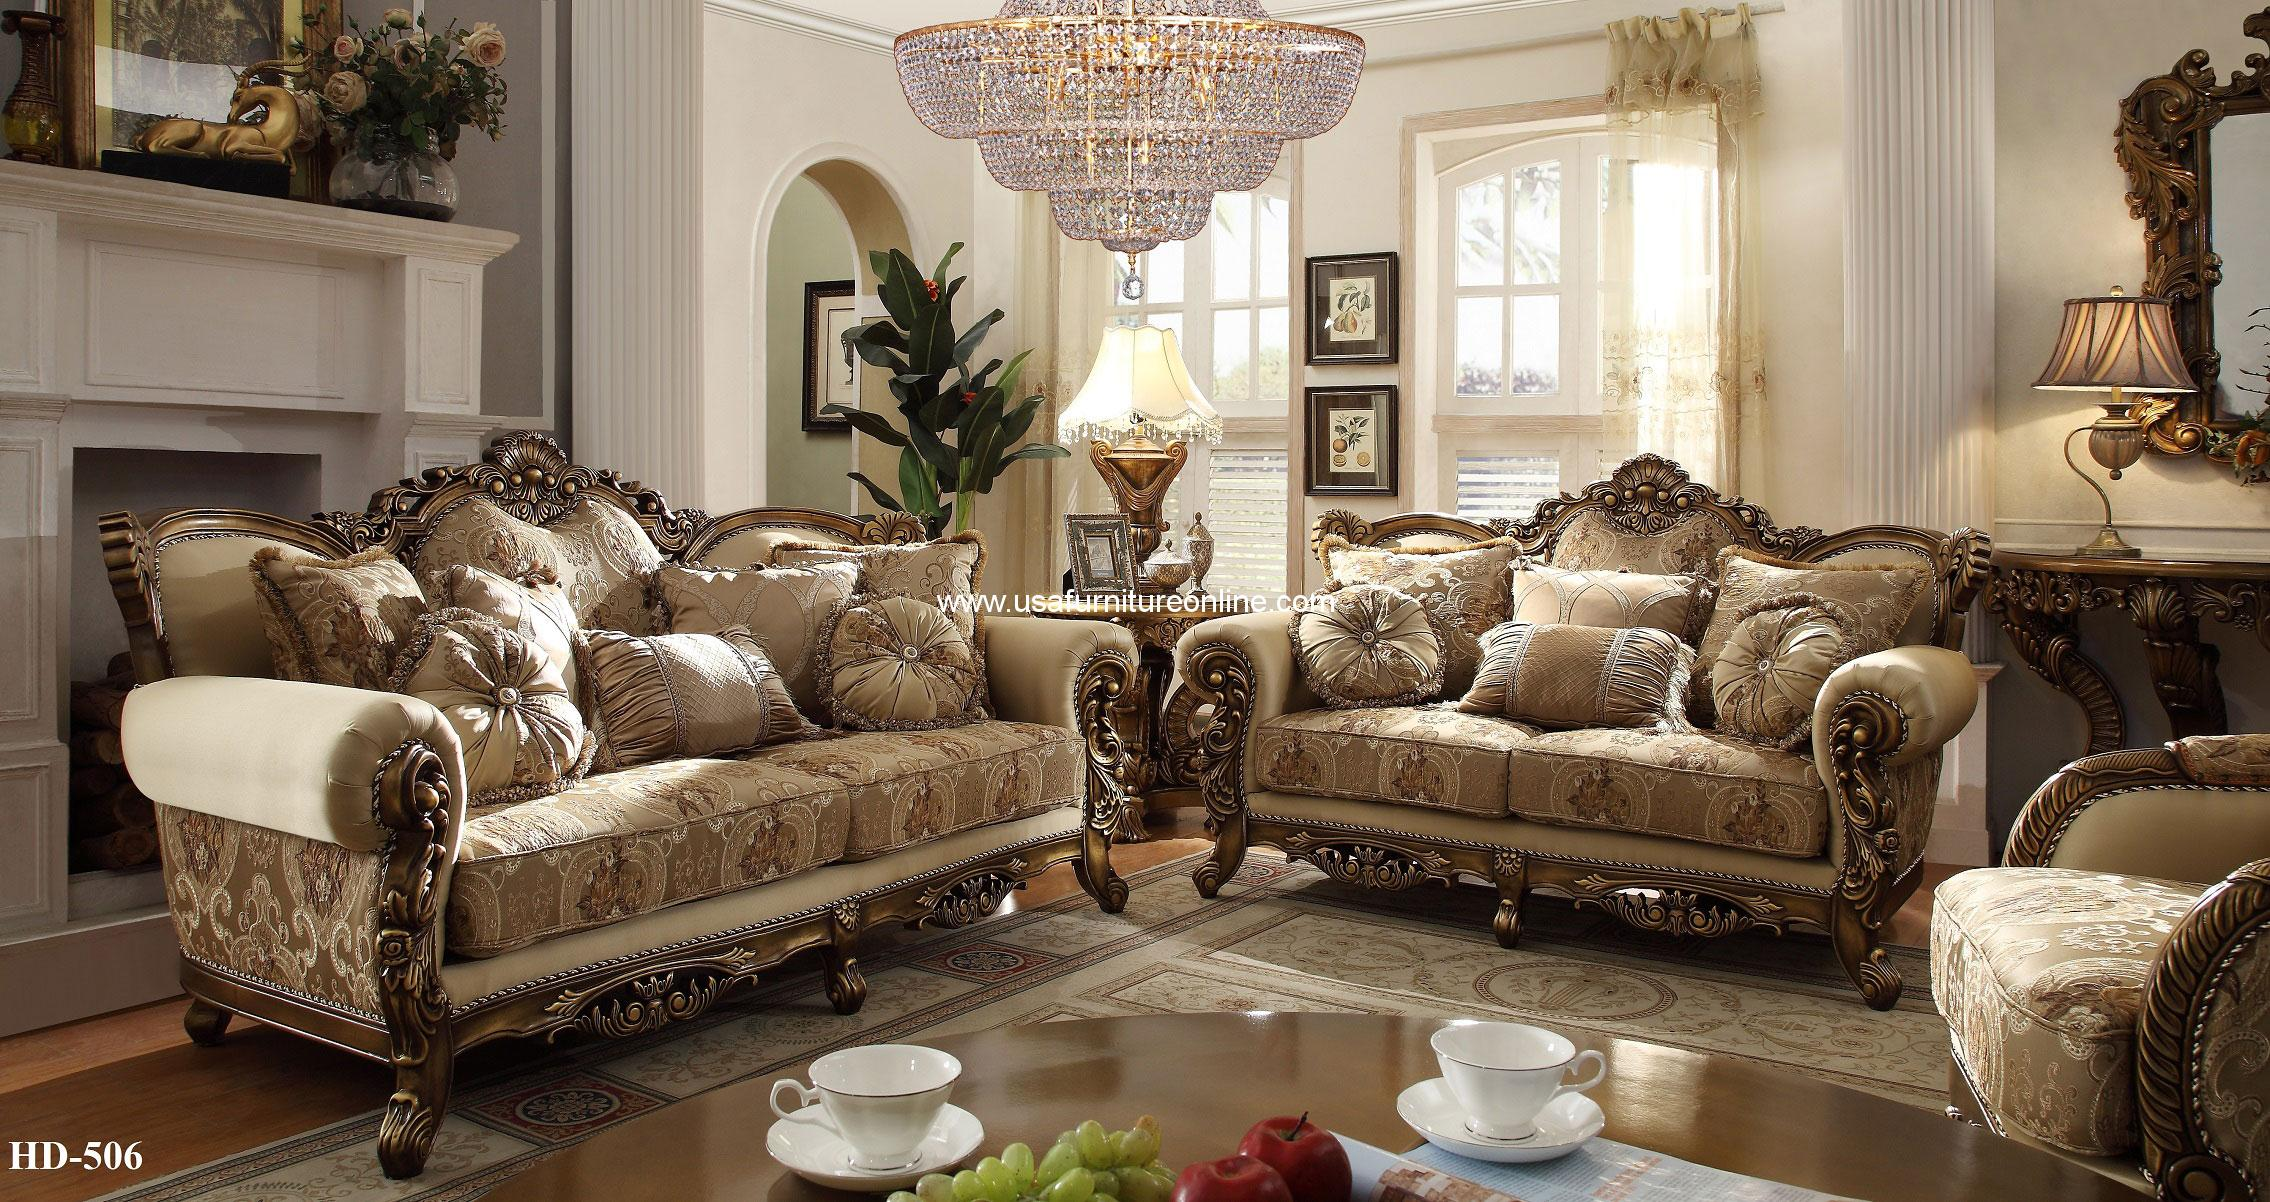 sofa set hd picture individual 2 piece t cushion slipcover vienna accent chair 506  usa furniture online